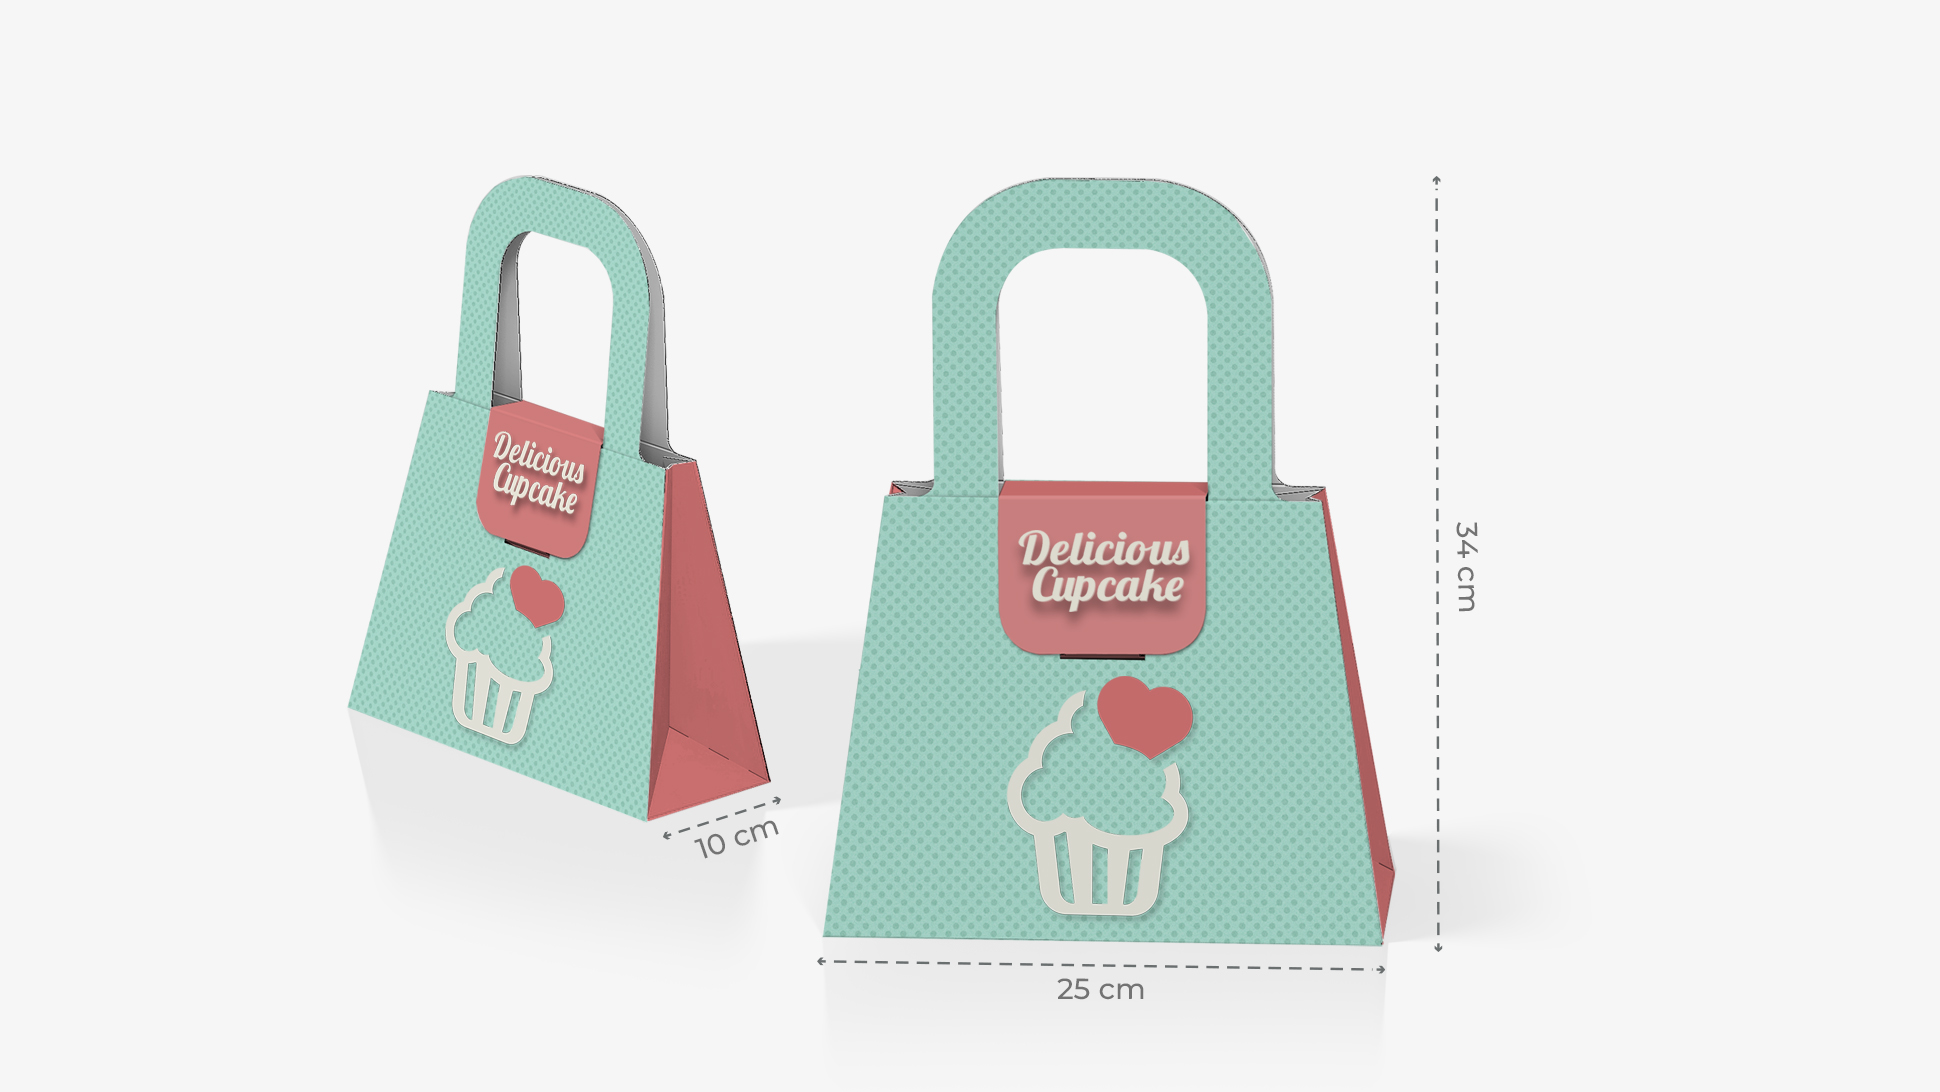 Borsa piccola in cartone con grafica | tictac.it